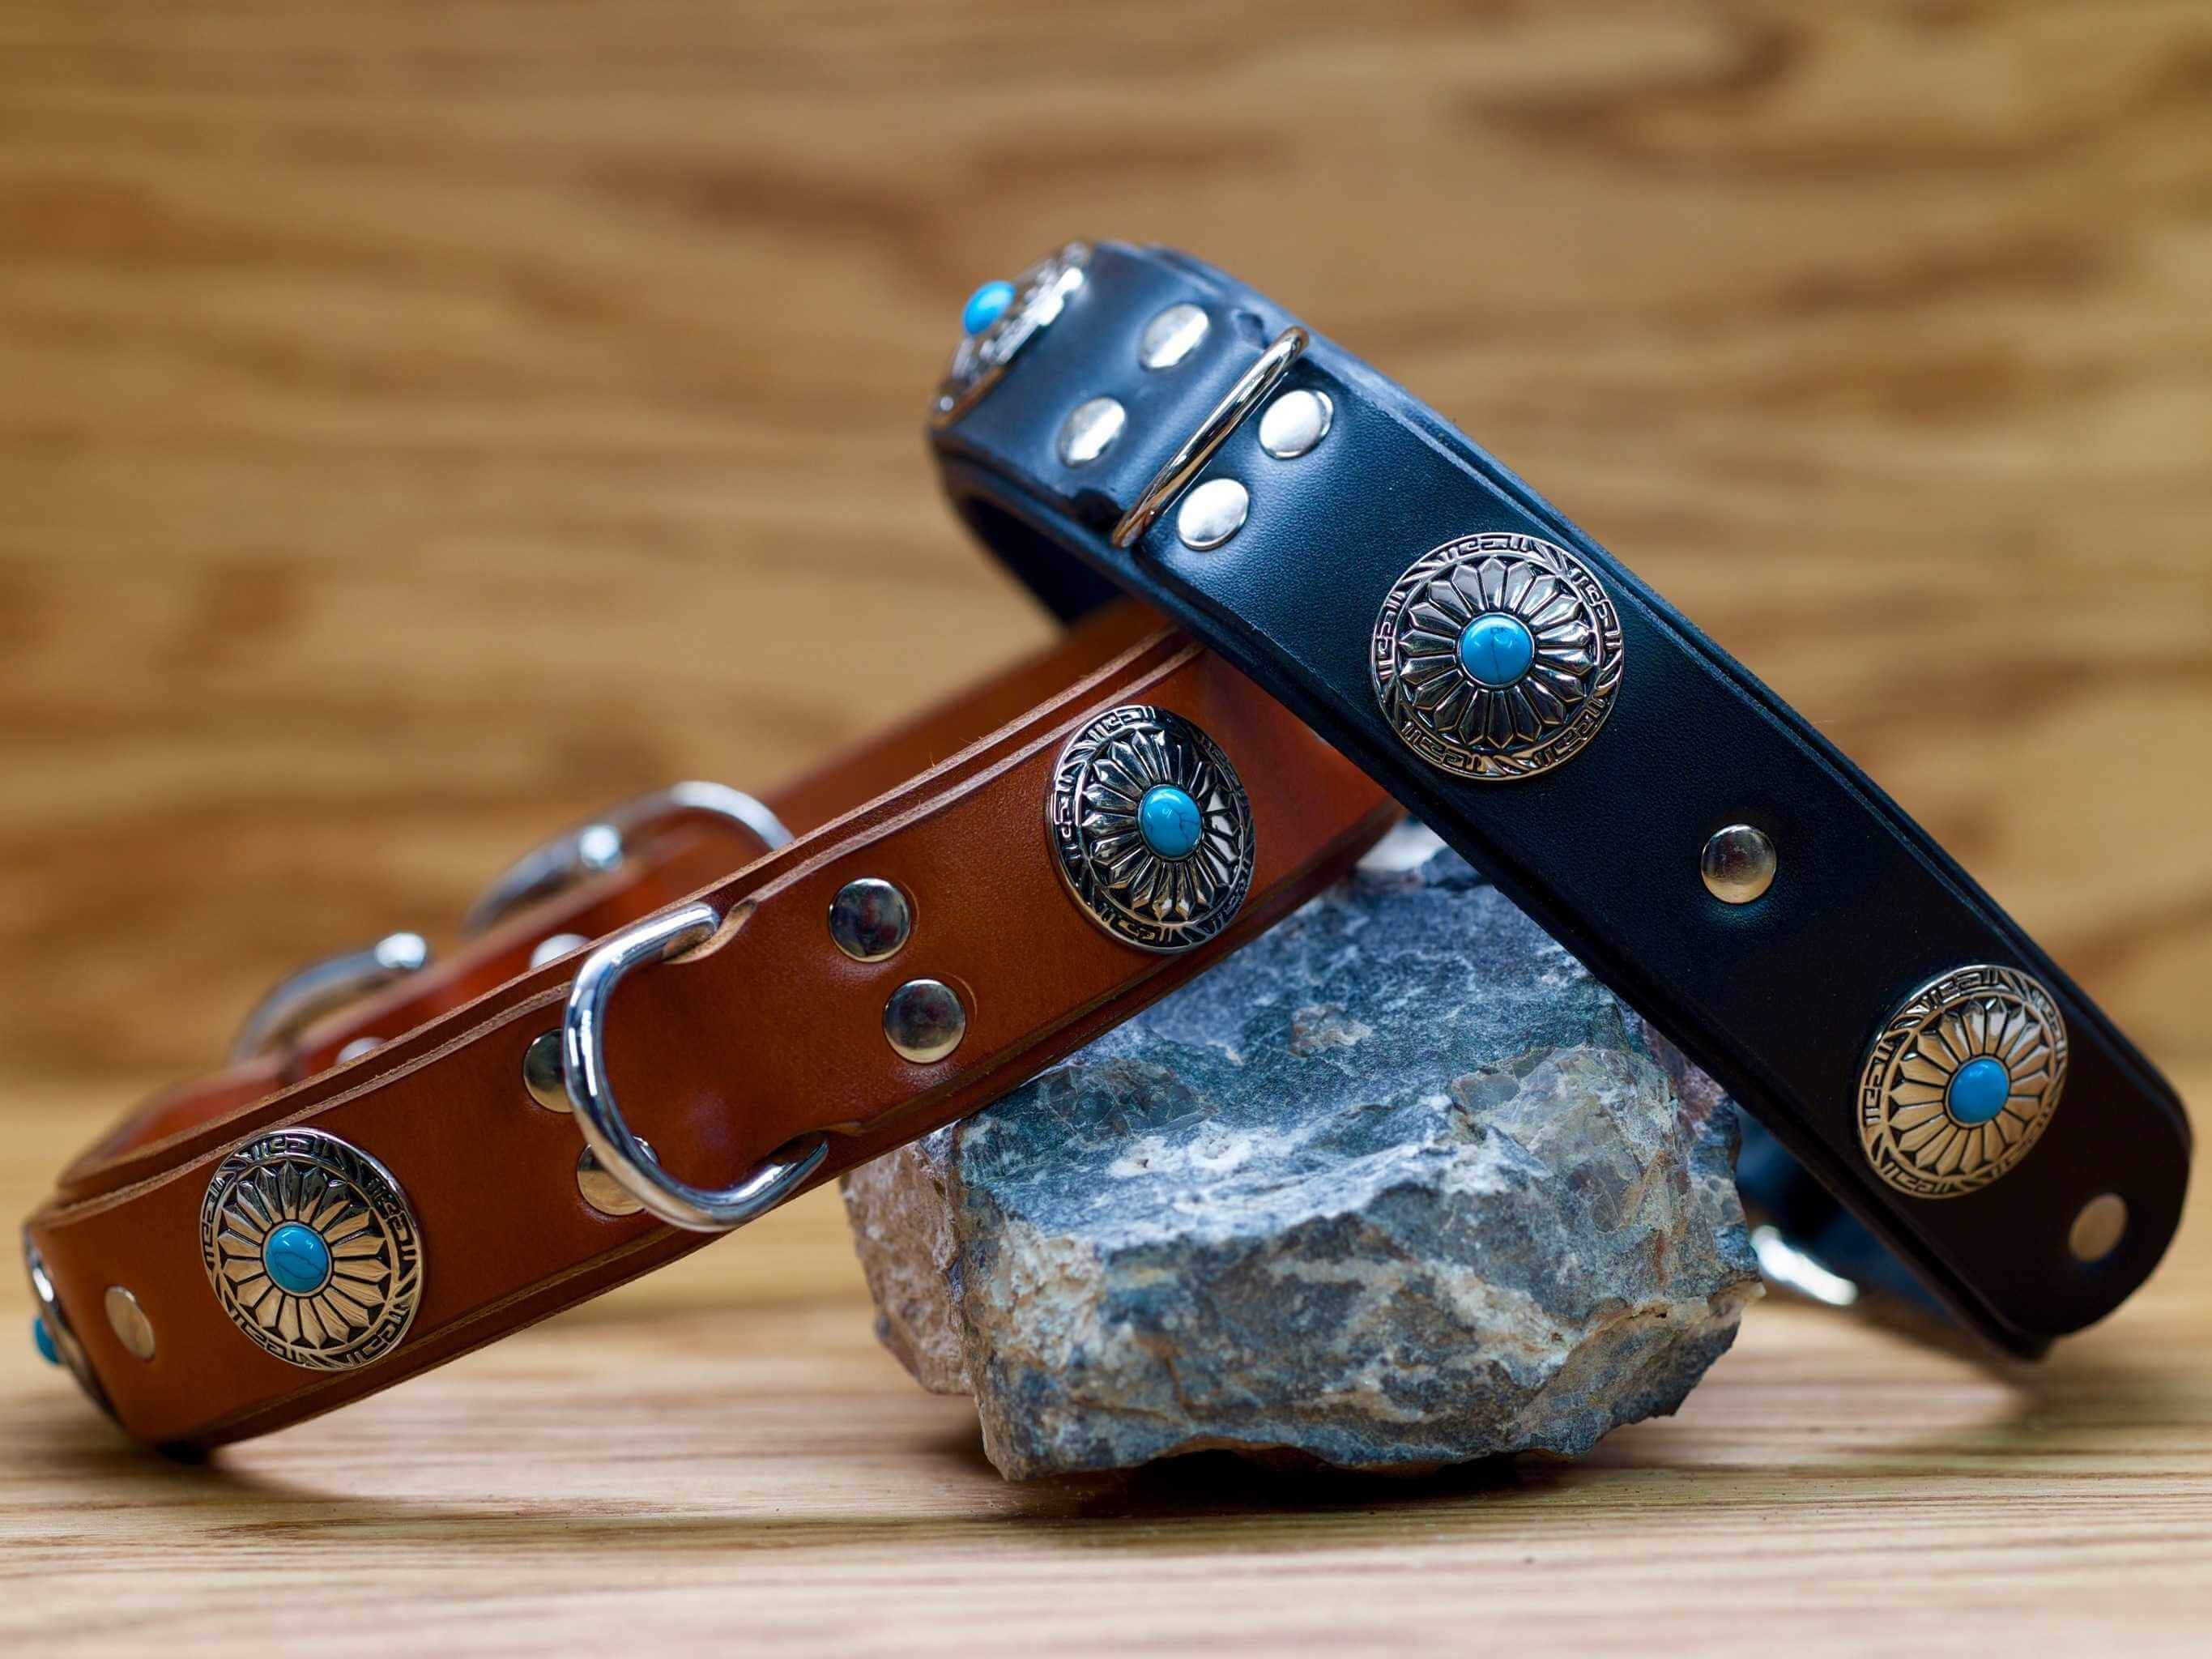 Our Blue Sun Leather Dog Collar is available in black or chestnut brown